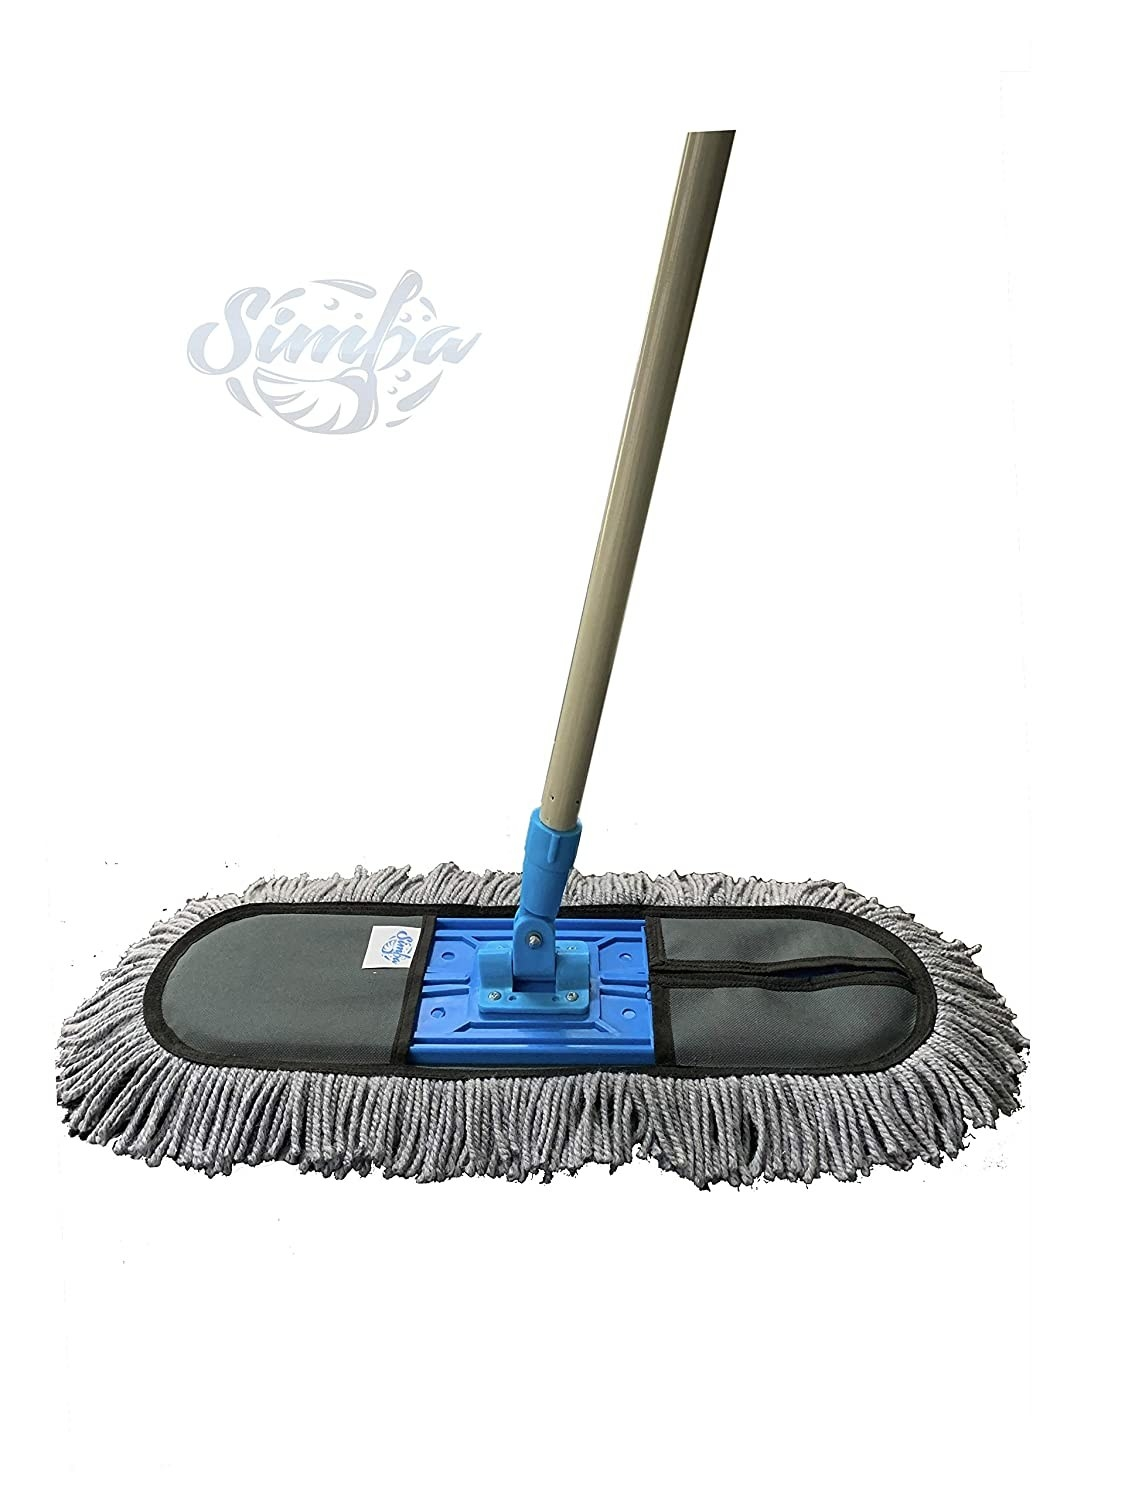 A wet and dry floor mop